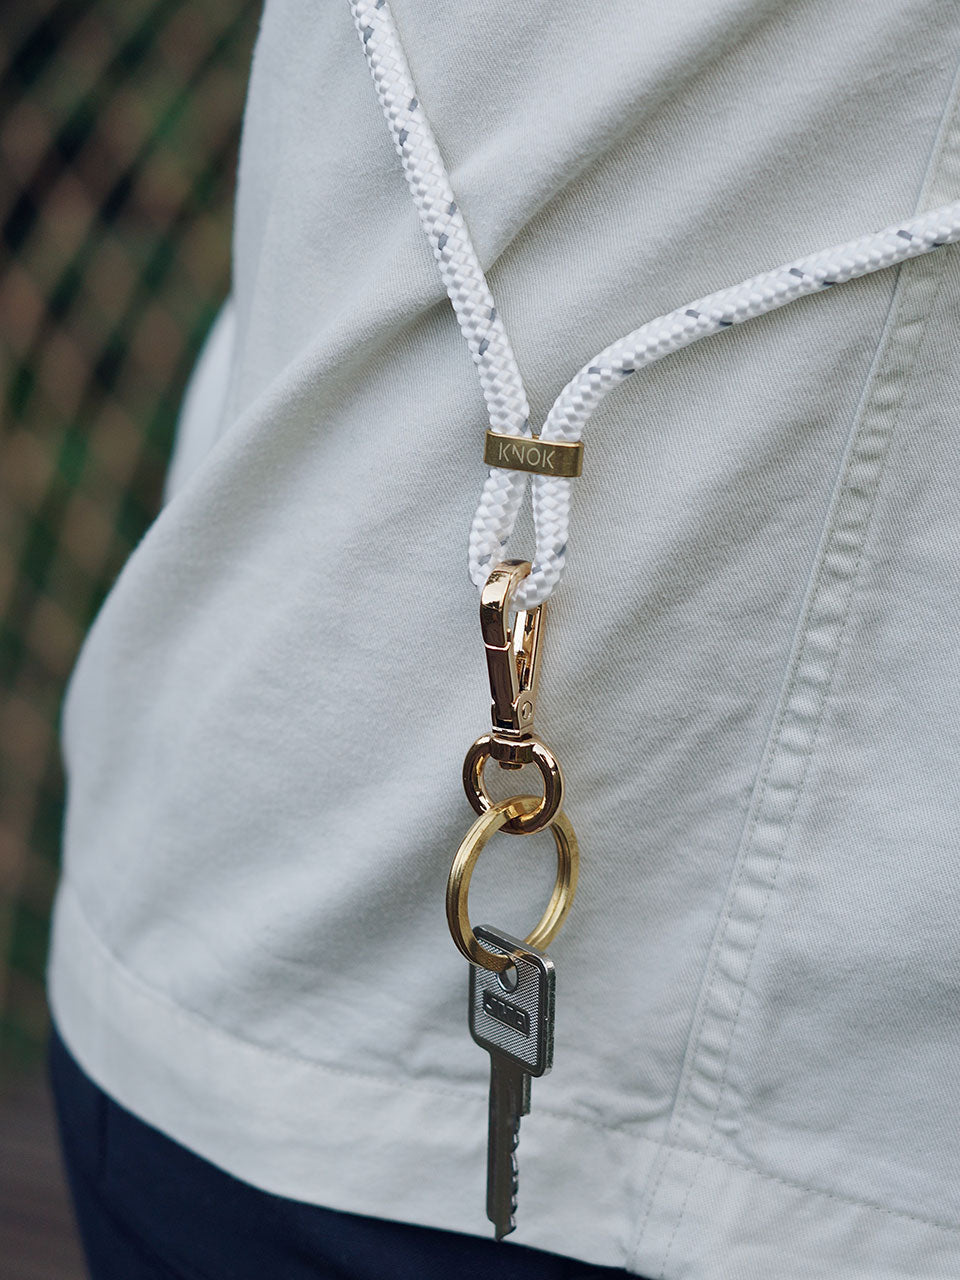 knok-keyholder-lanyard-white-reflect